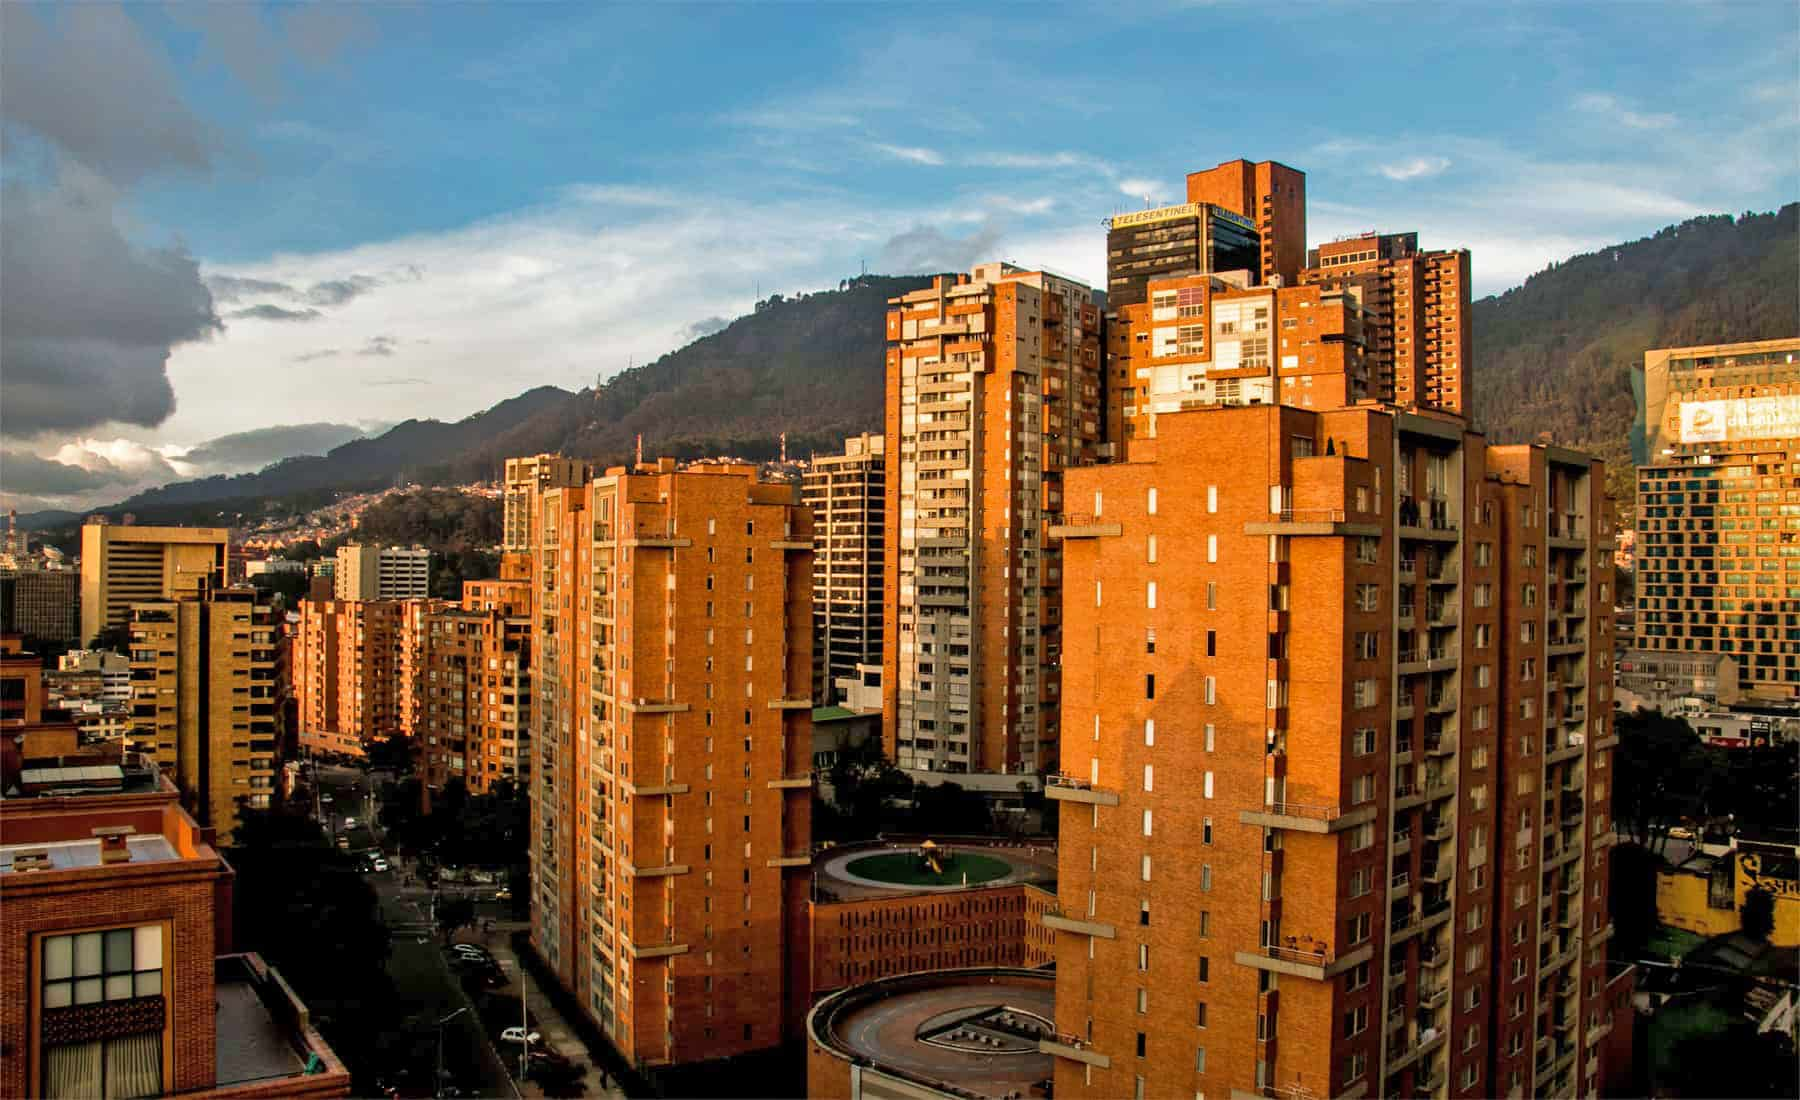 Orange buildings at sunset in Bogota, Colombia